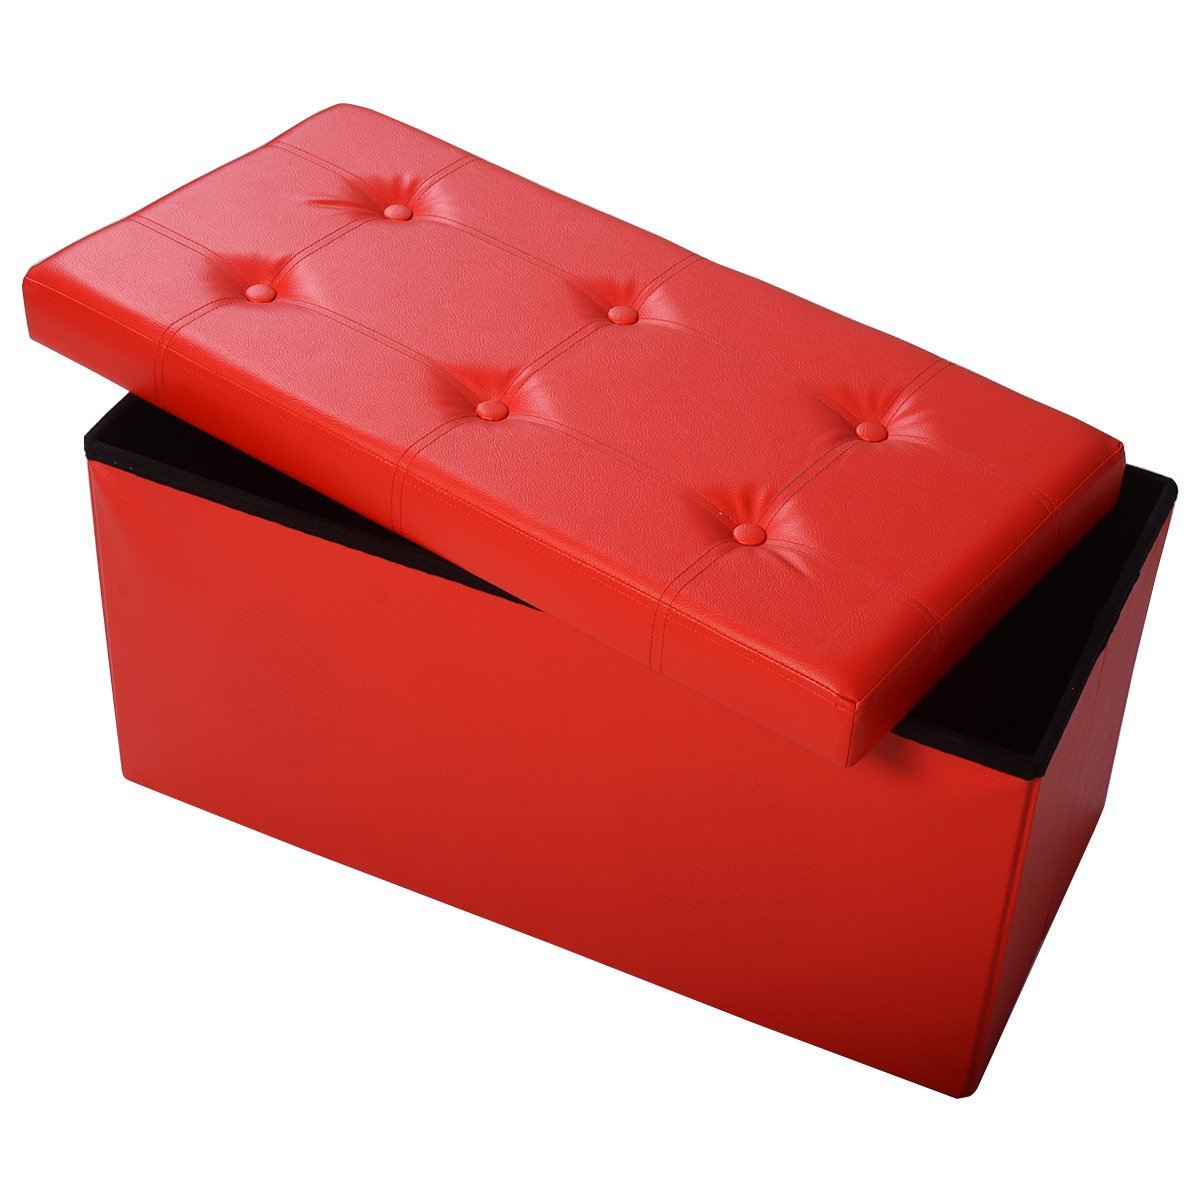 Giantex 30 L Folding Storage Ottoman Bench, Foldable Faux Leather Pouffe Box Stool Coffee Table Footrest for Hallway,Living Room, Bedroom Red